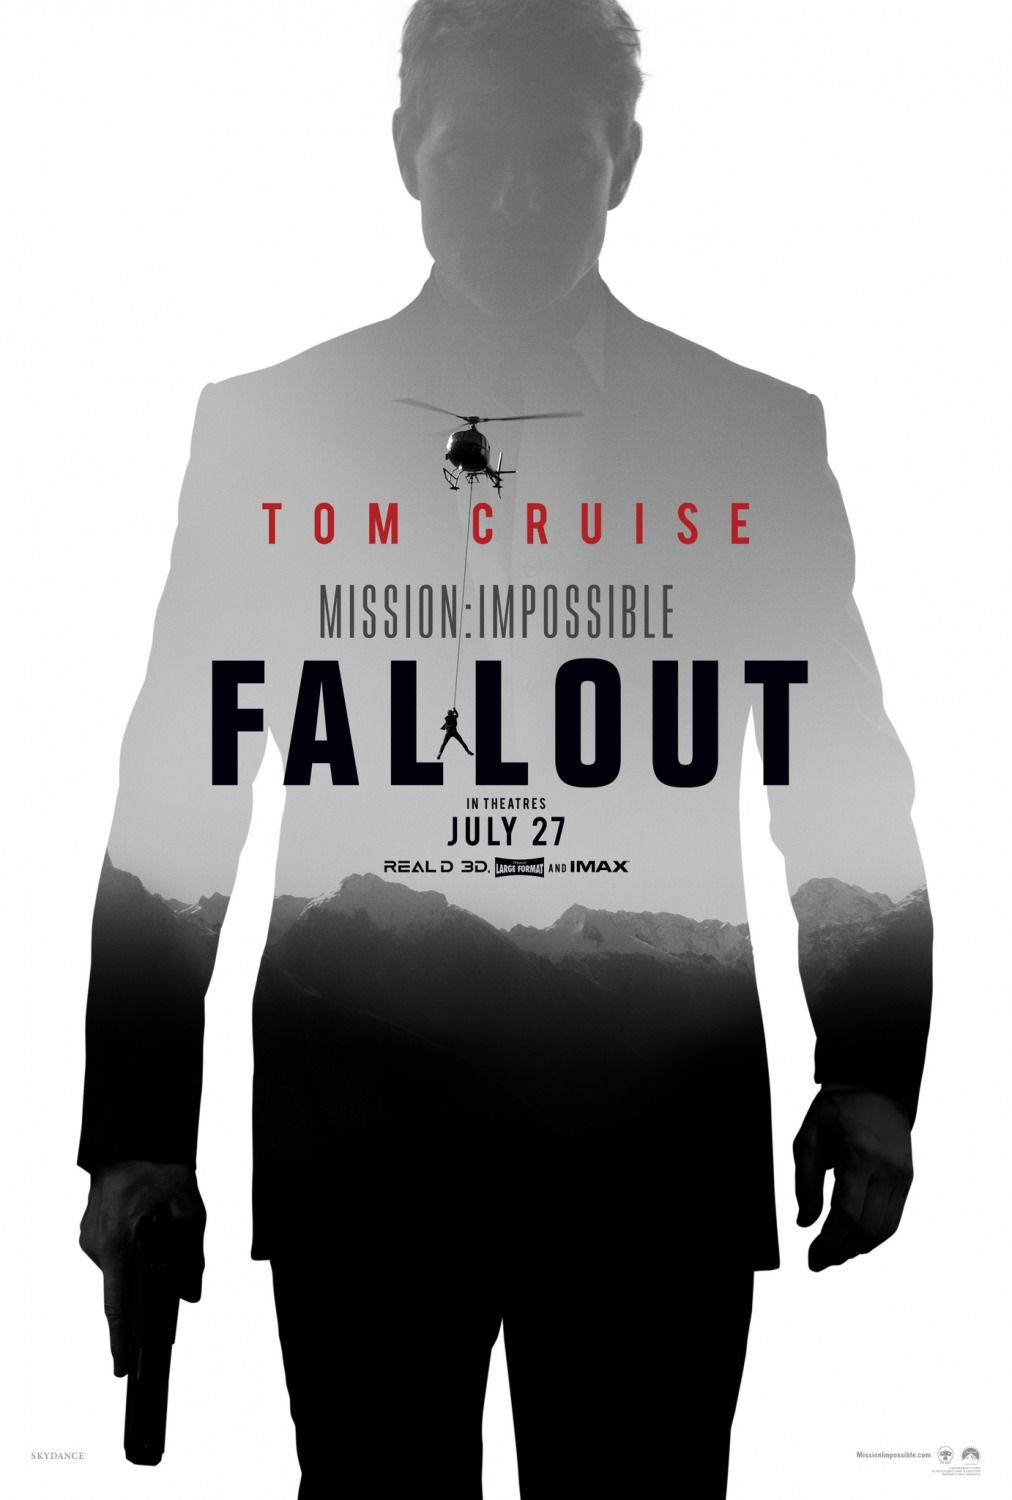 Mission: Impossible - Fallout | Movies IMDB in 2018 | Pinterest ...